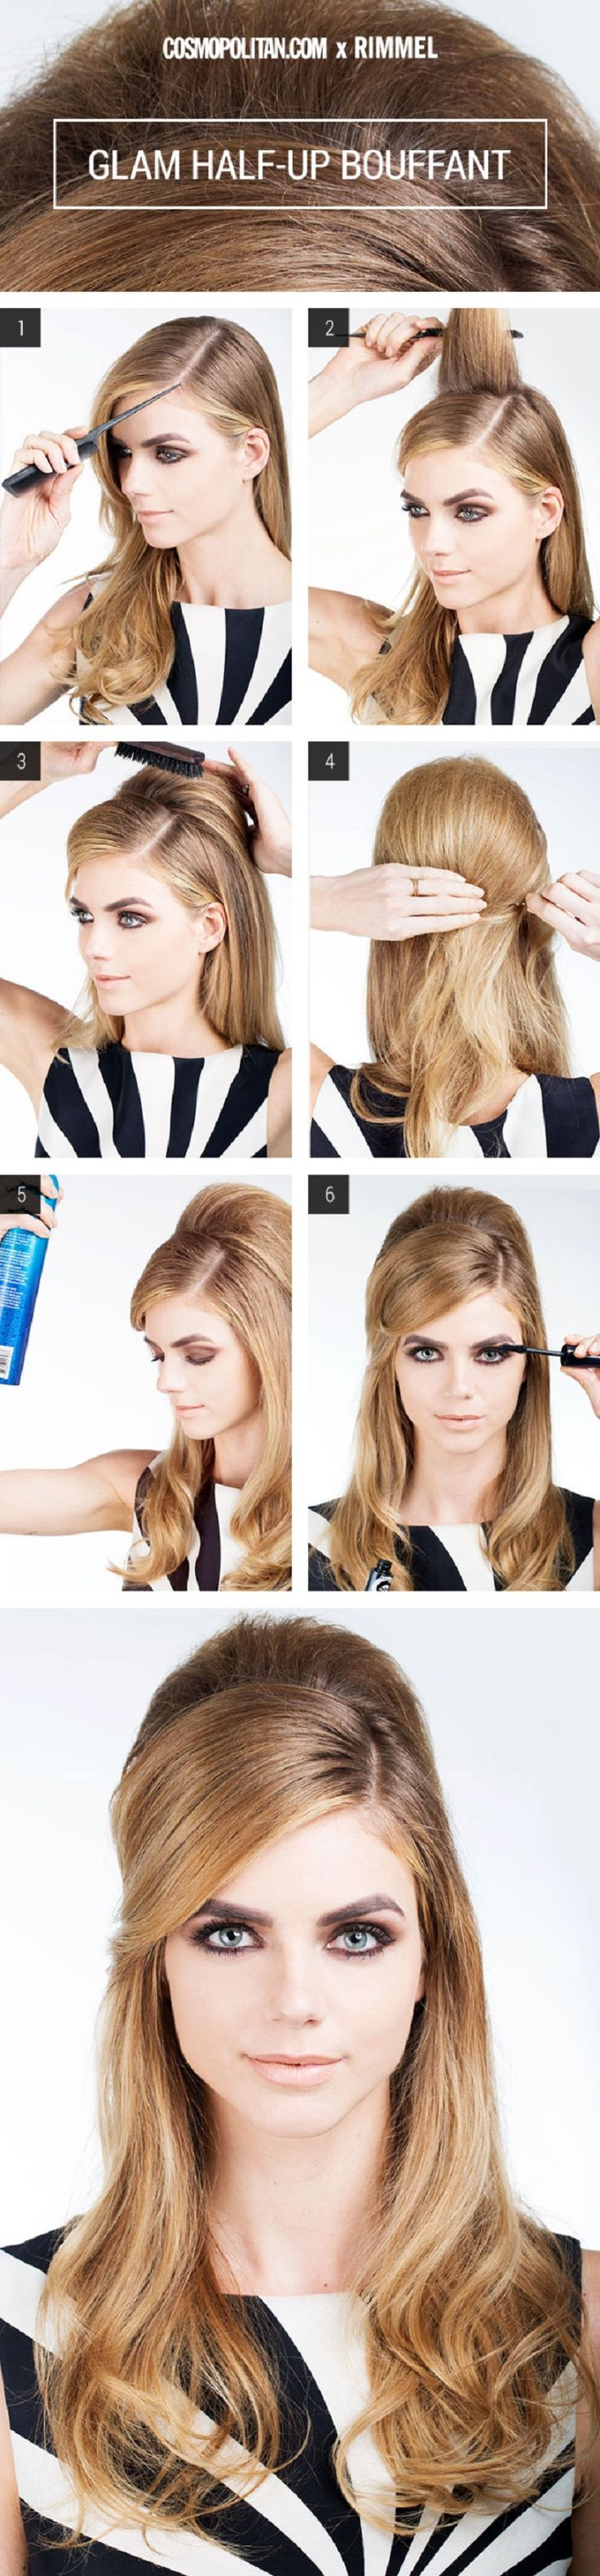 Hair How-To: Glam Half-Up Bouffant - 12 Hairstyle Tutorials for Lazy Girls | GleamItUp